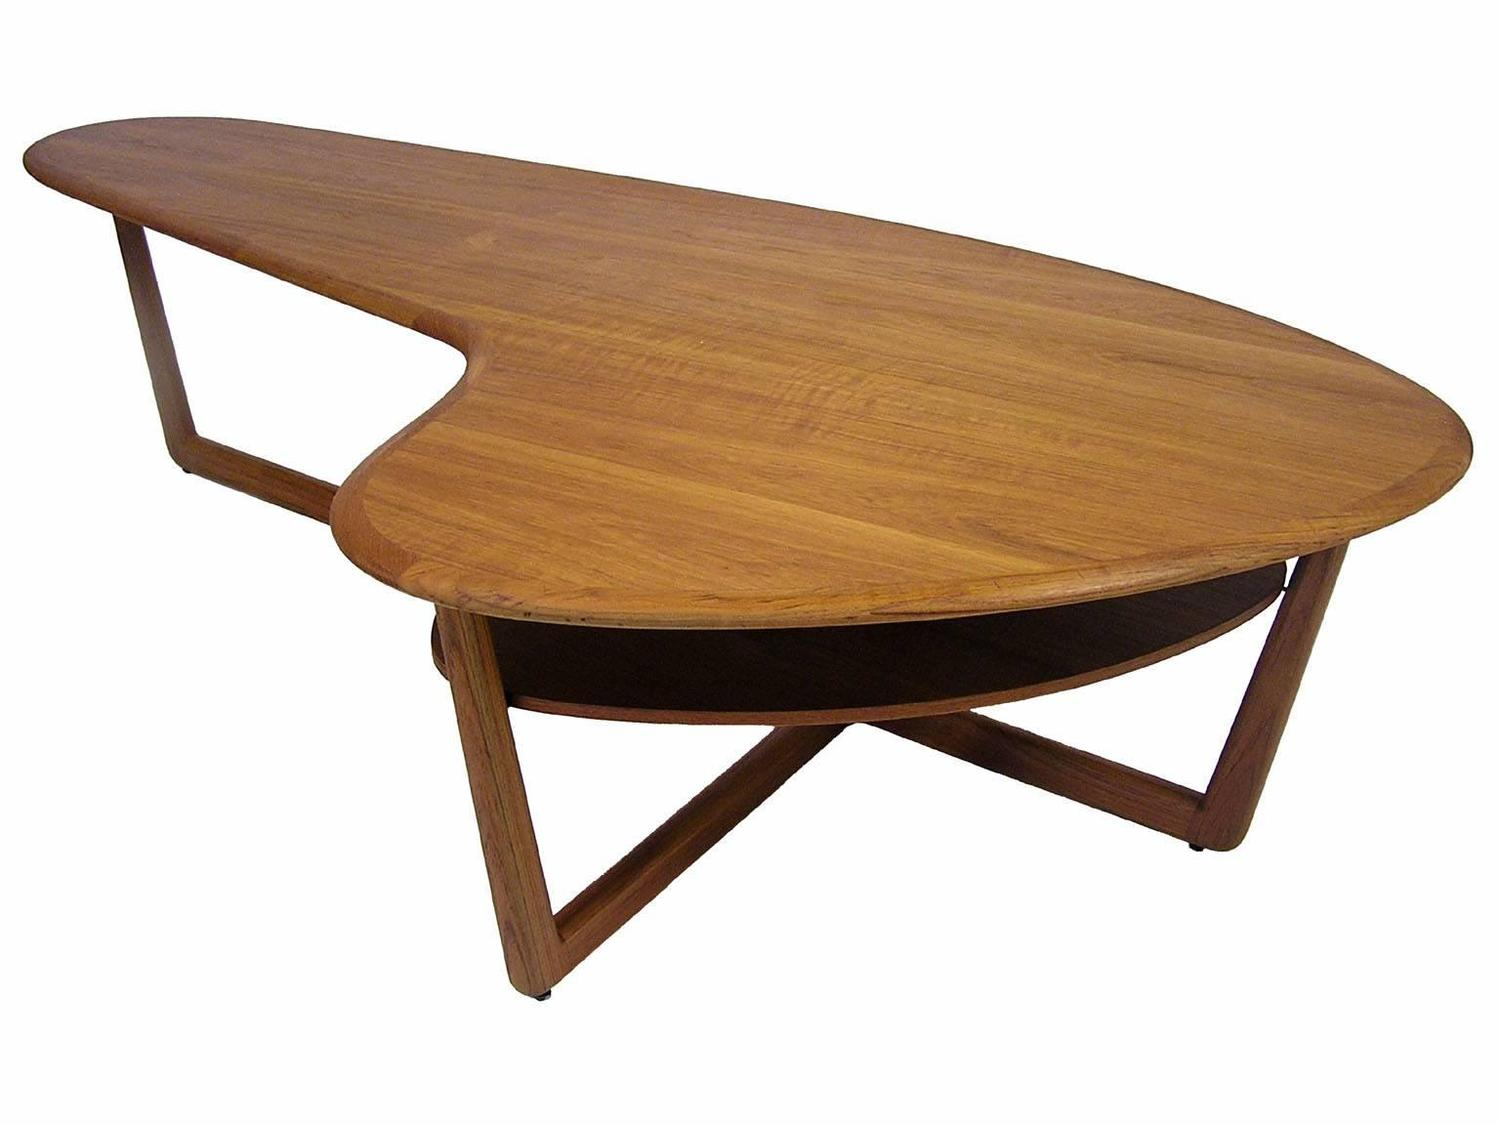 1960s Organic Kidney Shaped Teak Coffee Table For Sale at